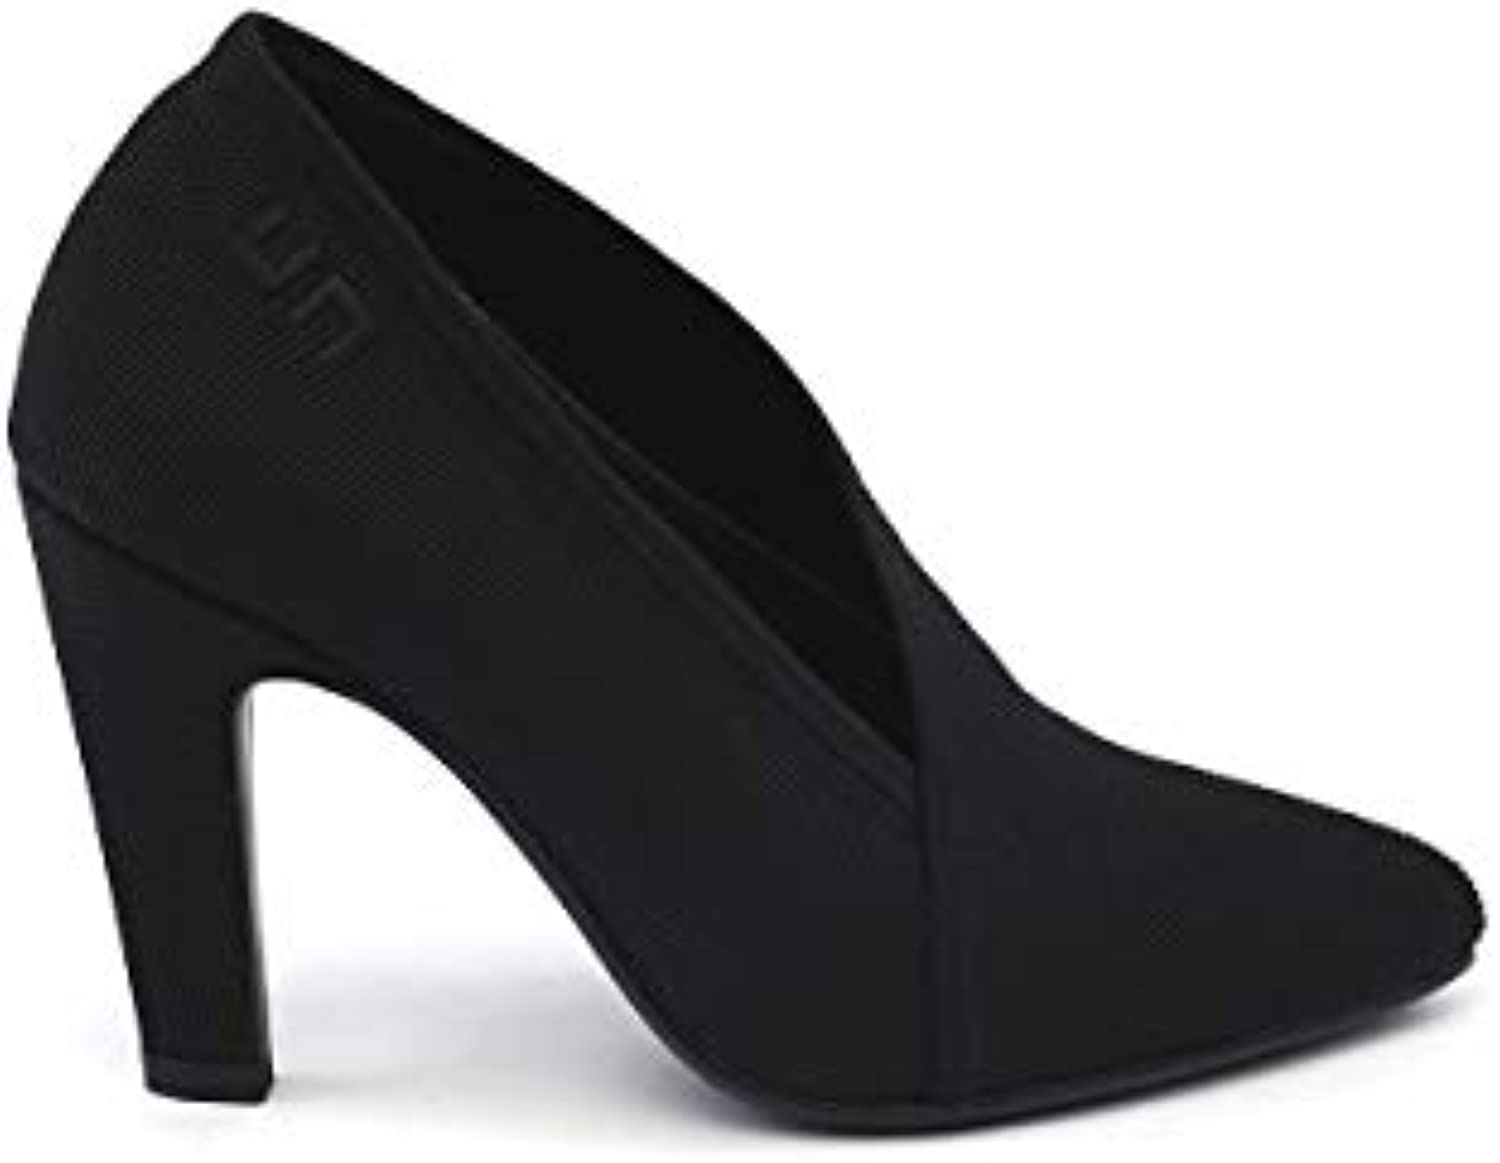 cf409d31ca7be5 Escarpins-United Nude - Couleur - Noir, Taille - 38B07HYX1P4VParent | | |  Distinctif 16360e